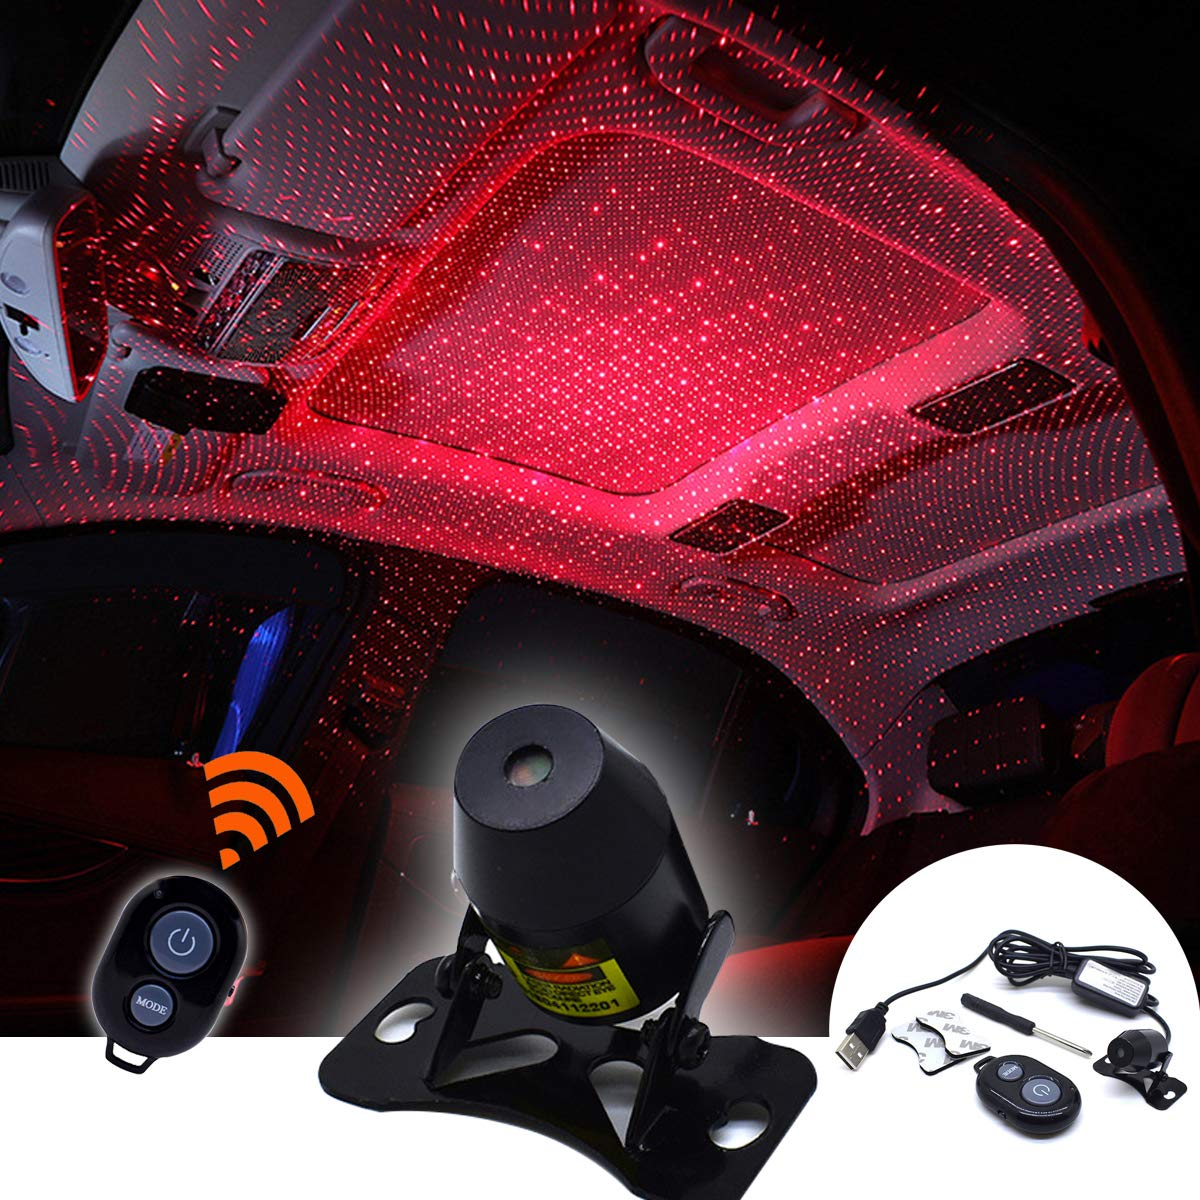 Red-Starry Sky Car Roof Full Star Projection Laser Romantic Auto Roof Star led,Night Lamp Fit All Cars Multiple Modes-No Need to Install Car Interior Atmosphere Lights LED Fecorative Armrest Box